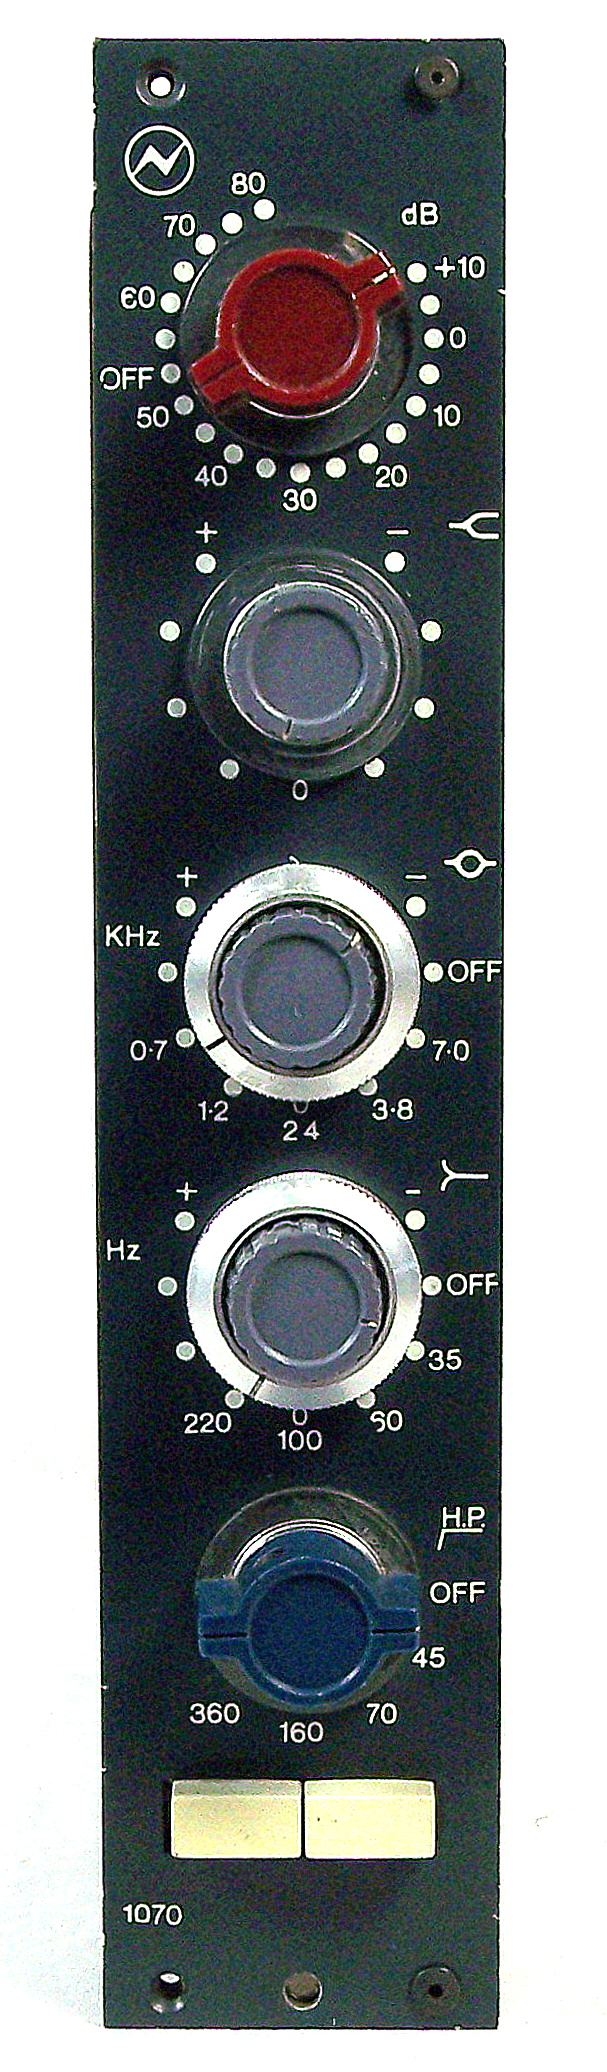 Neve's 1070 - Single Input for both Mic and Line signals